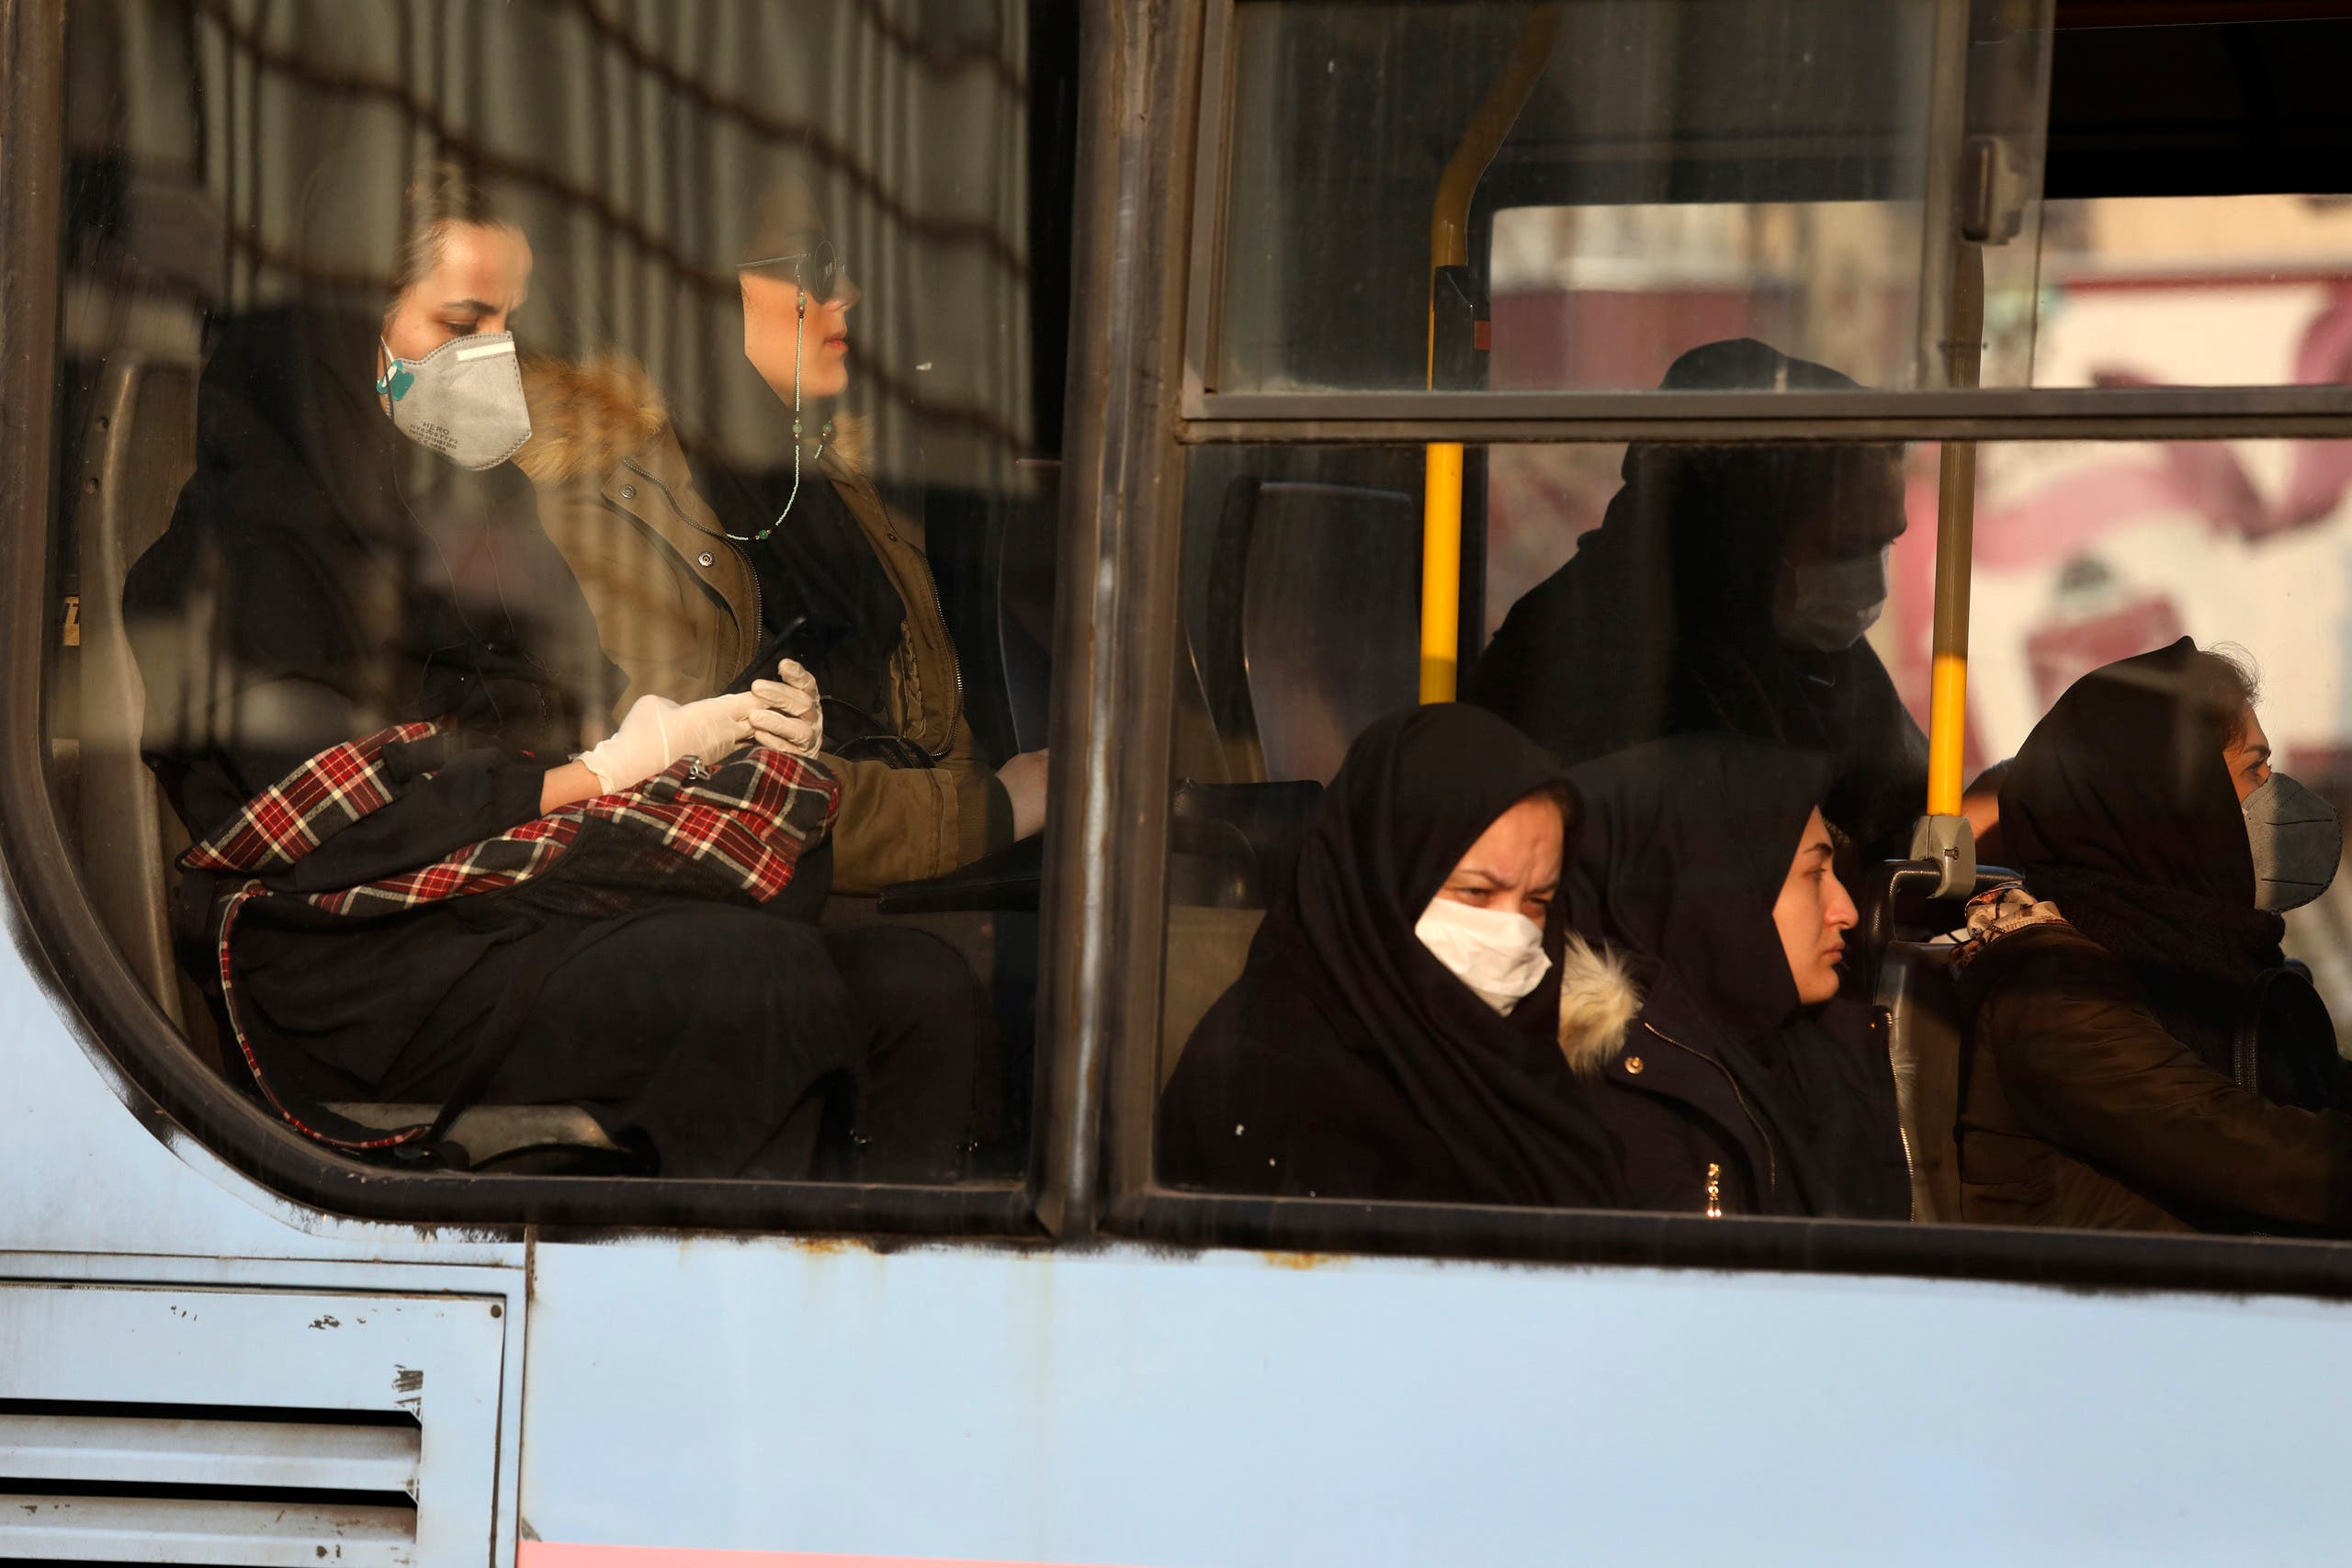 Woman, wearing face masks, on a public bus in a street in Tehran on Feb. 29, 2020. (File photo: AP)